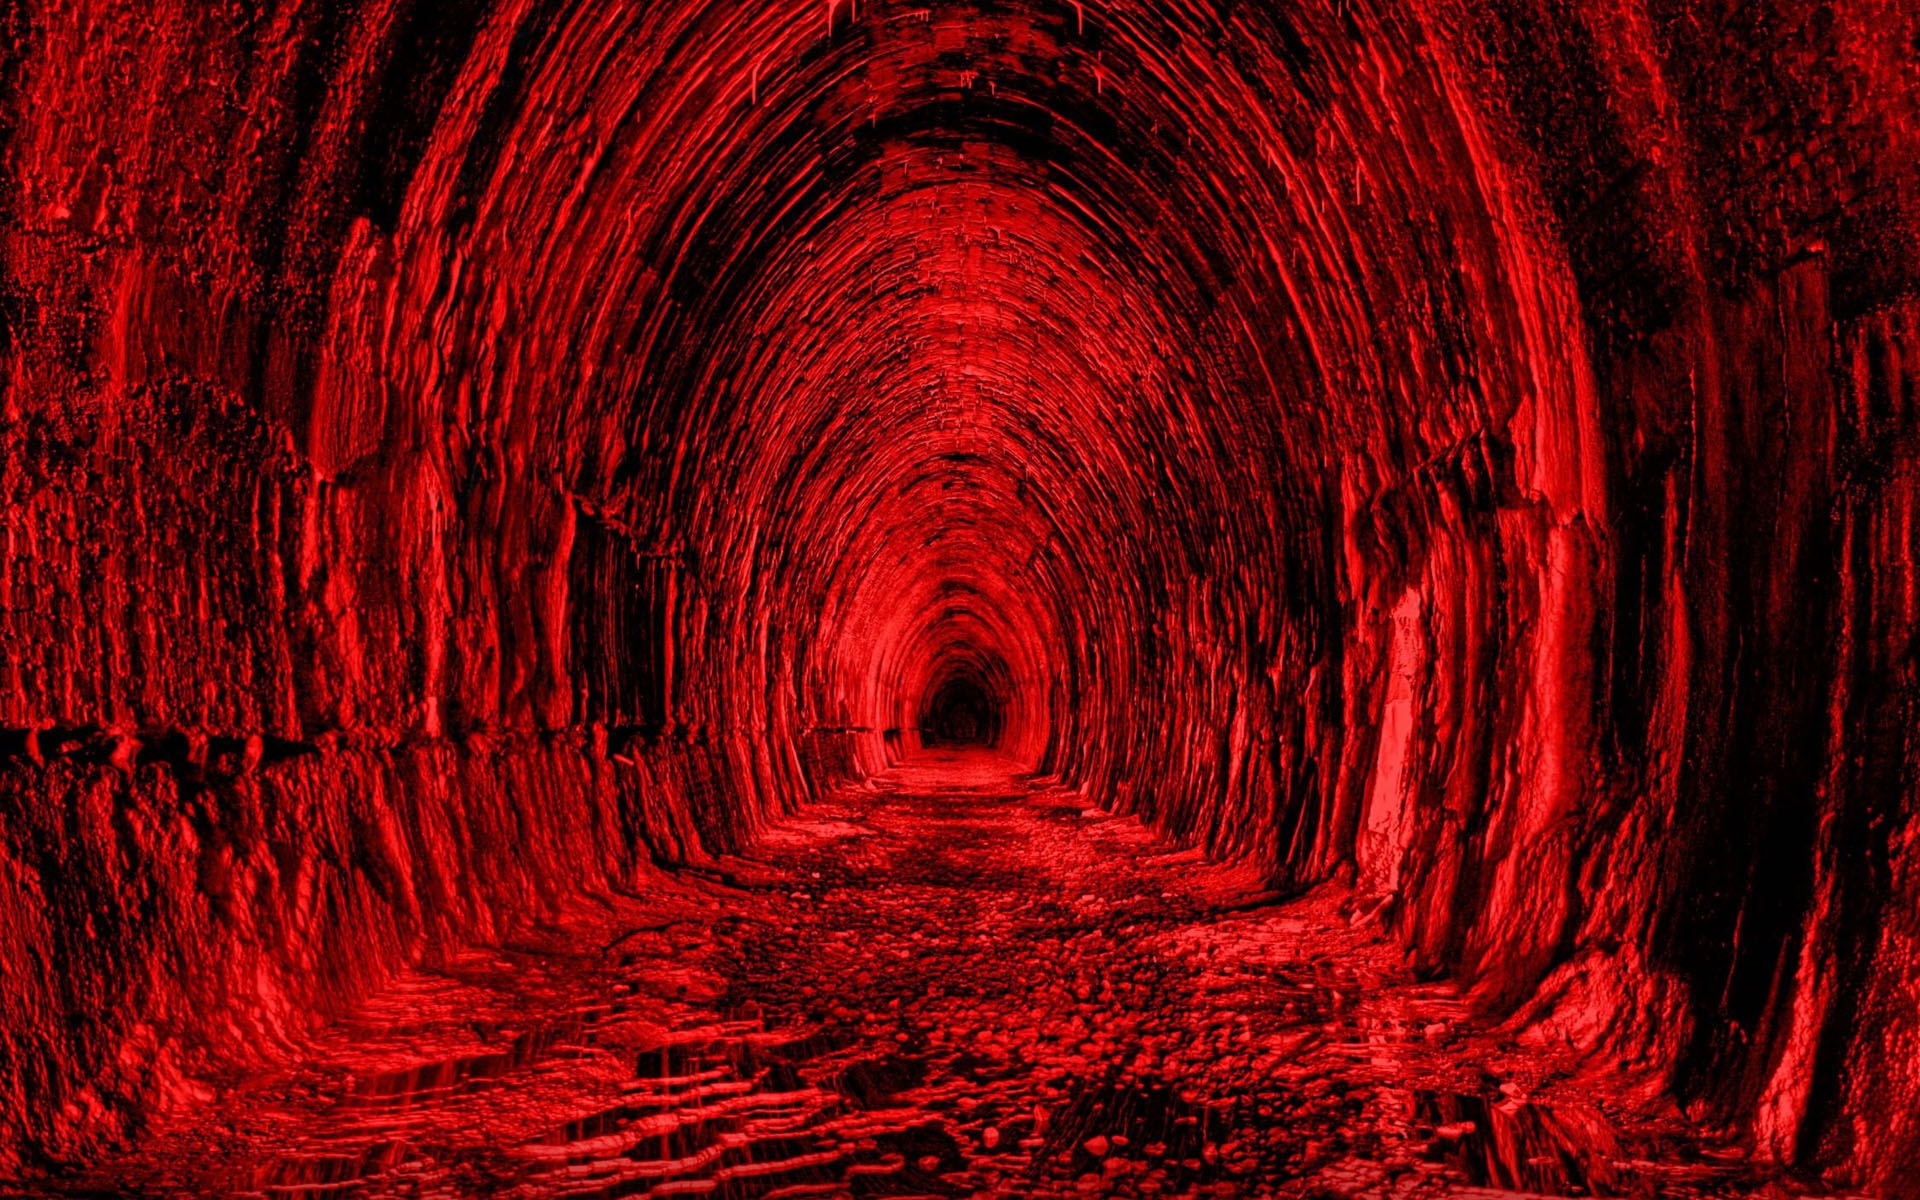 Wallpaper For Iphone 5s Black Red Tunnel Hd Wallpaper Hd Latest Wallpapers